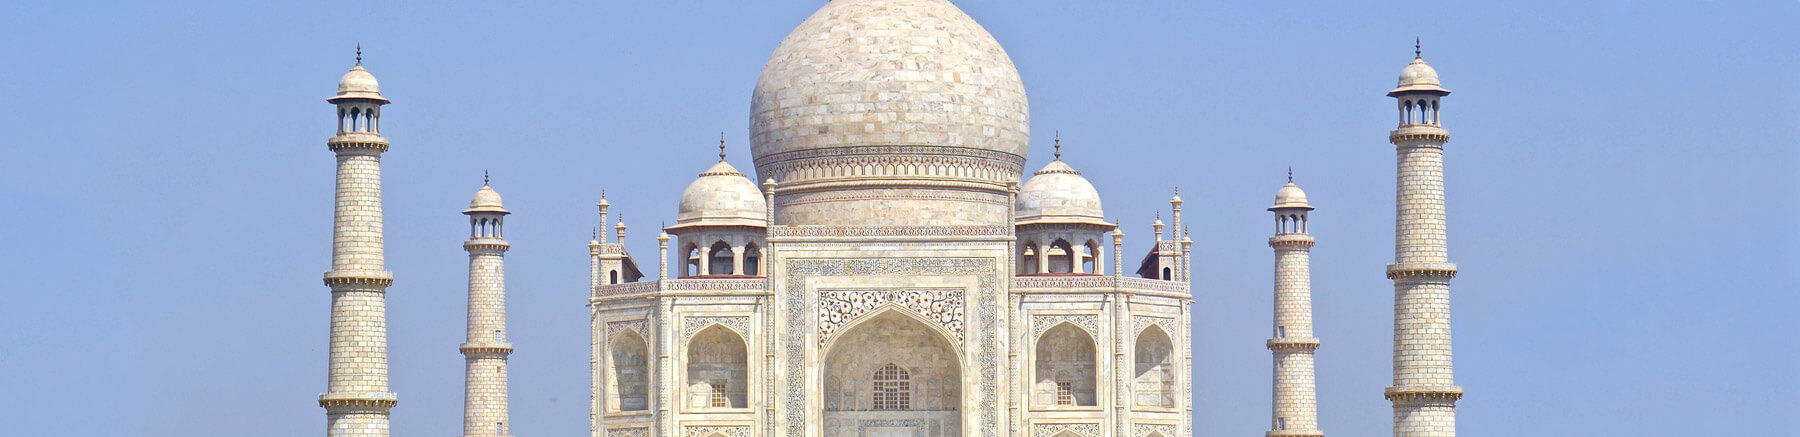 Close up view of the Taj Mahal in Agra, India